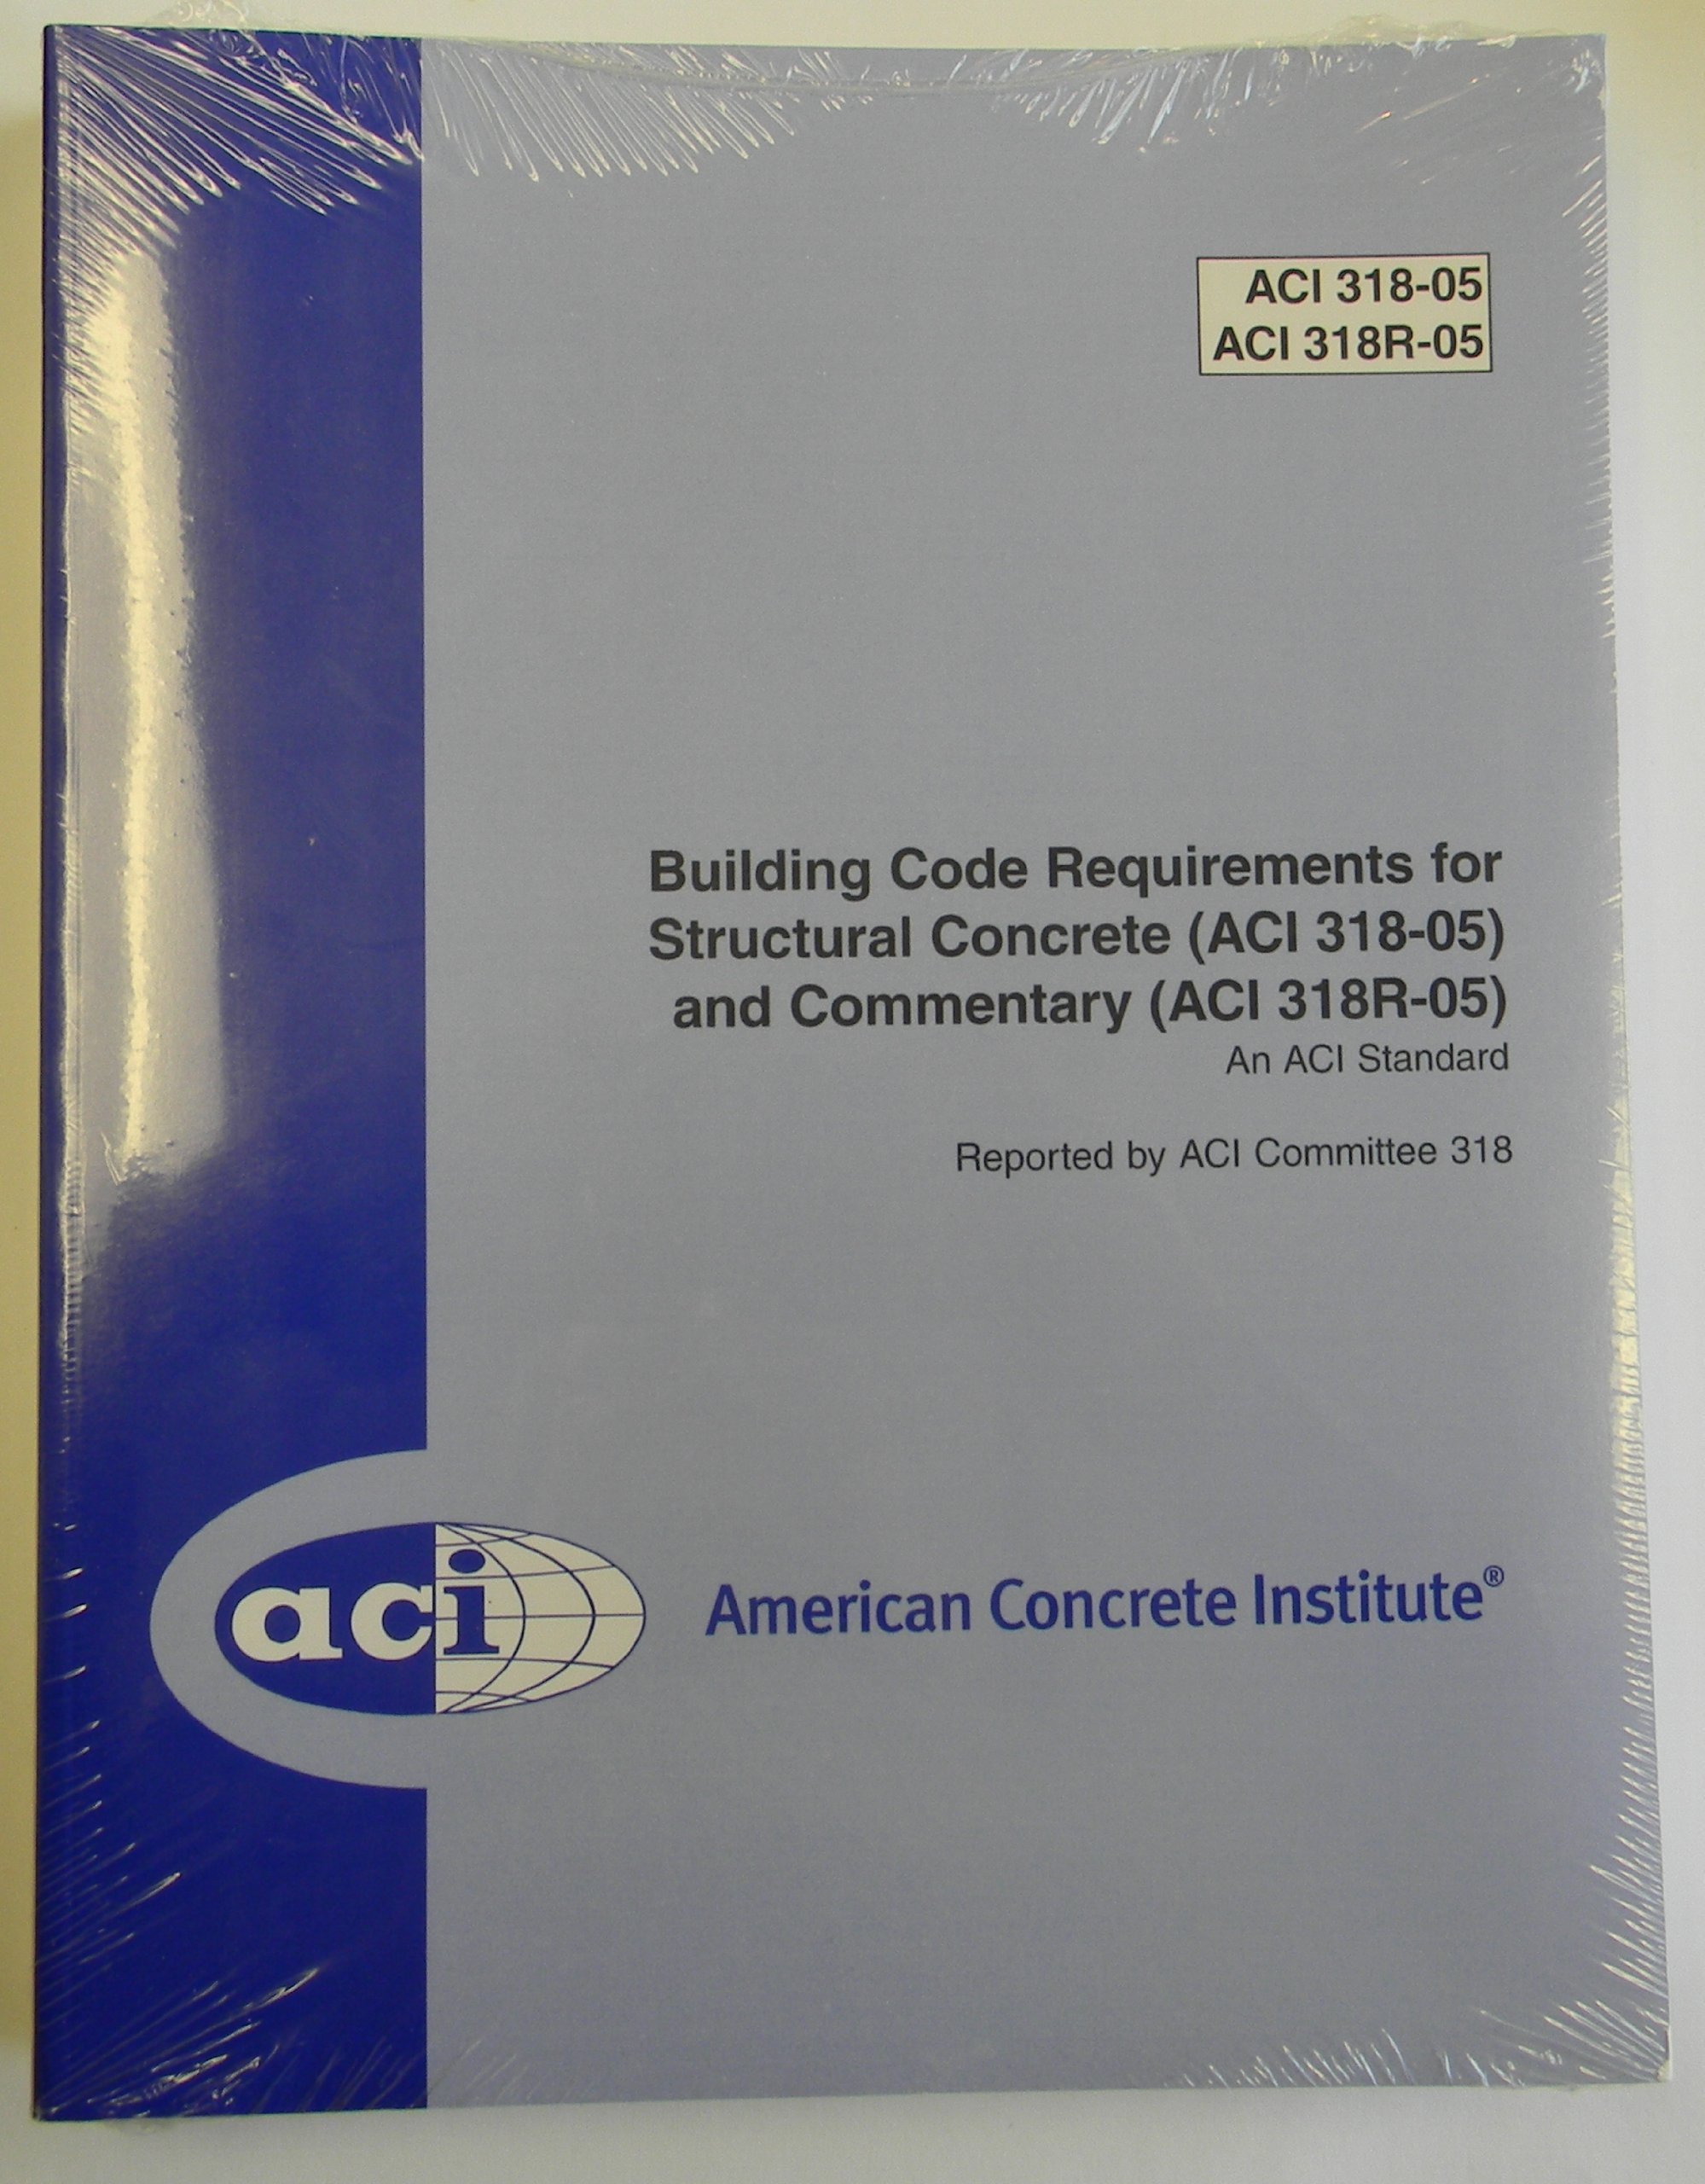 Download Building Code Requirements for Structural Concrete and Commentary (ACI 318-05 318R-05) #318-05/318R-05 PDF